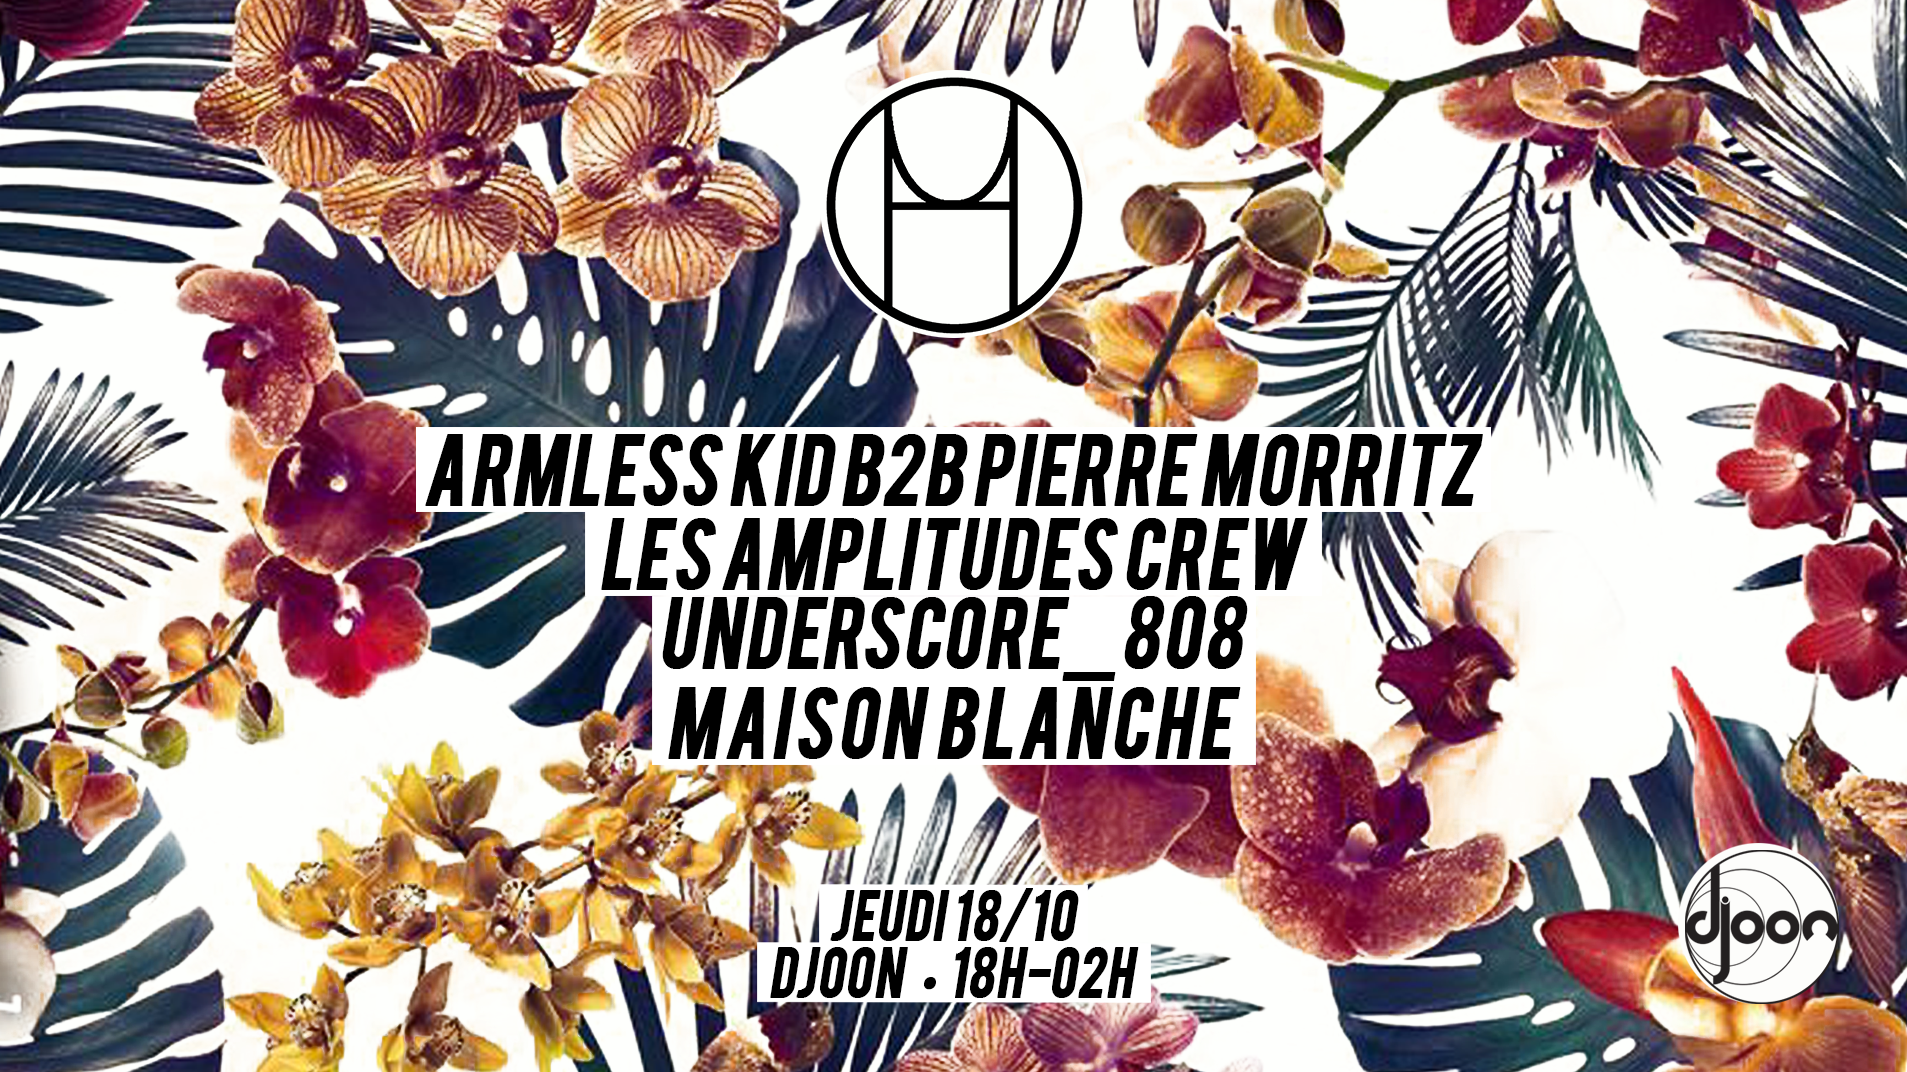 House Of Underground invite Armless Kid, Les amplitudes and more